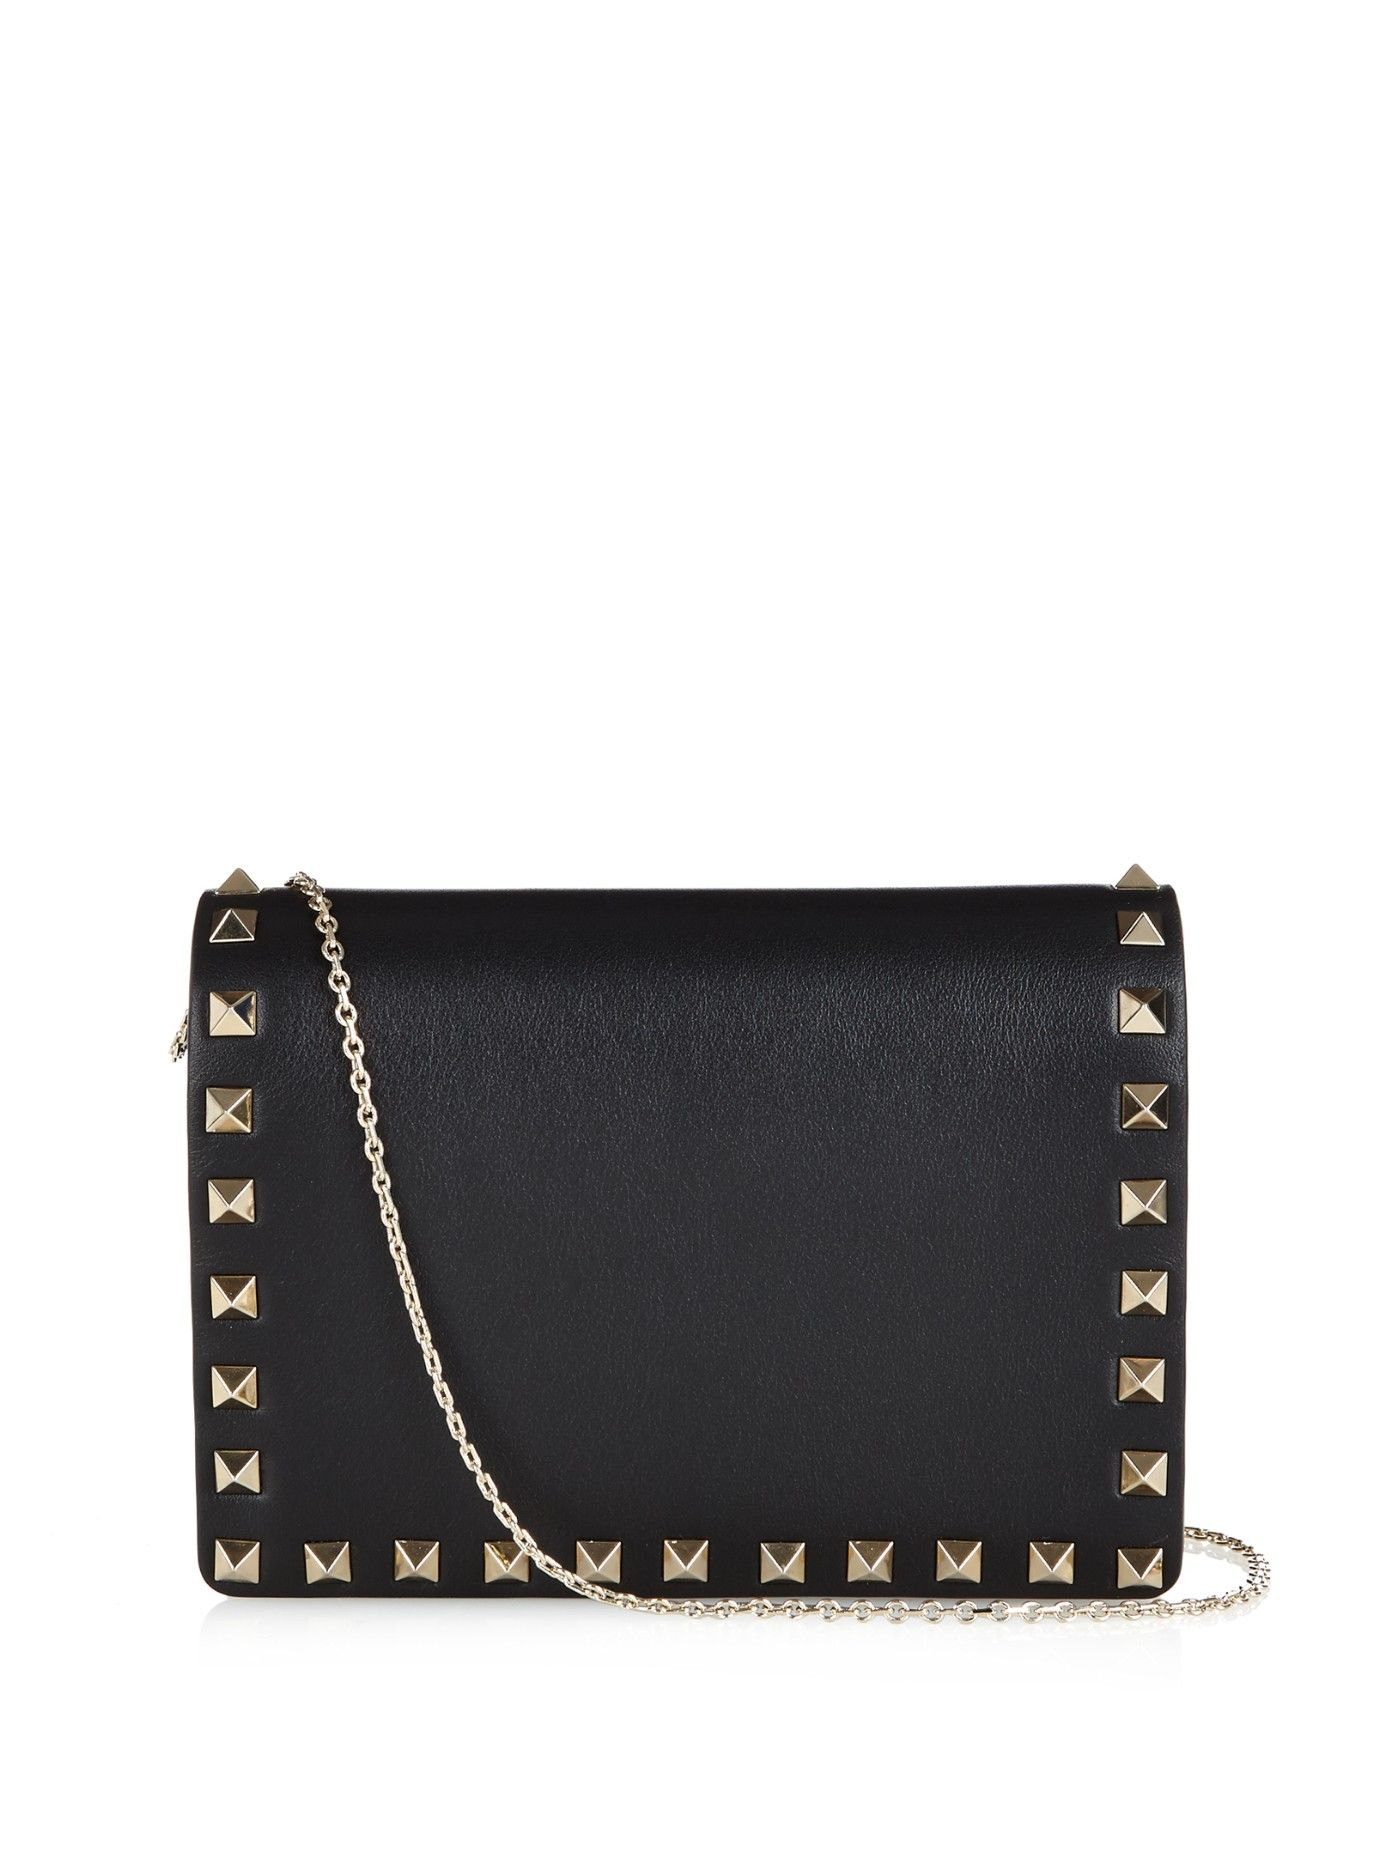 Rockstud leather cross-body bag by Valentino | Shop now at #MATCHESFASHION.COM